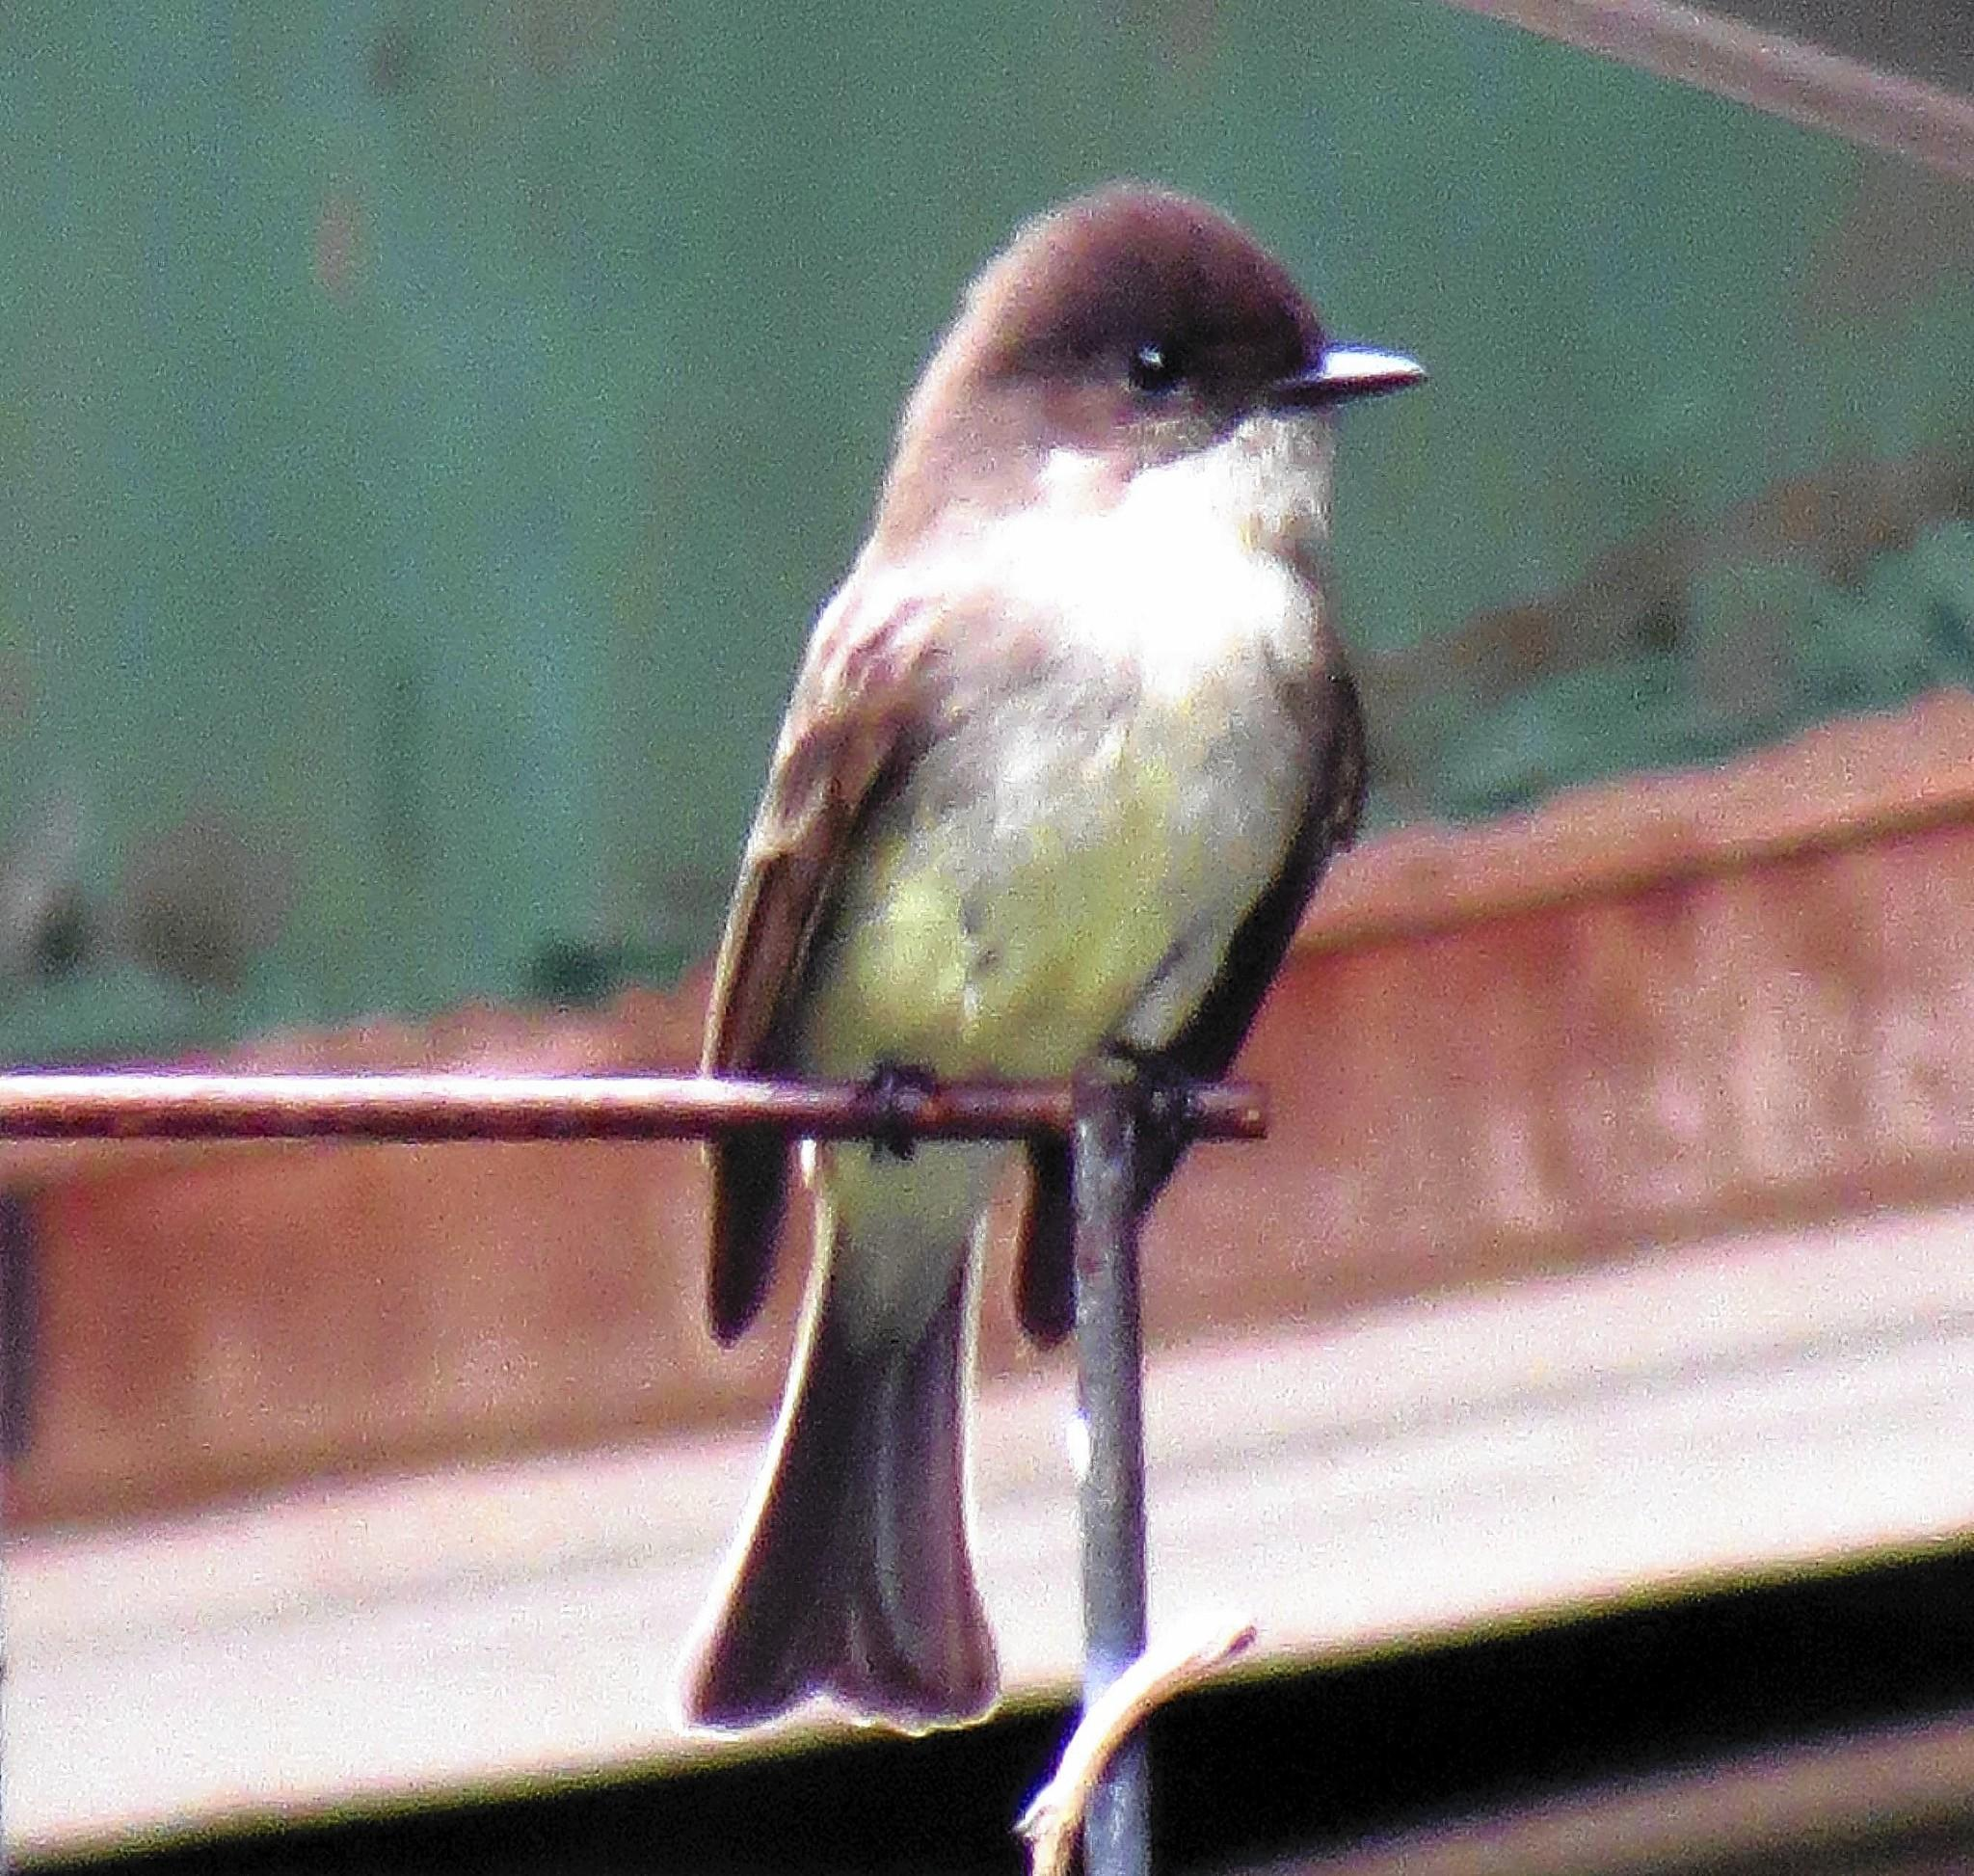 The song of the Eastern Phoebe is one of nature's natural stress relievers.